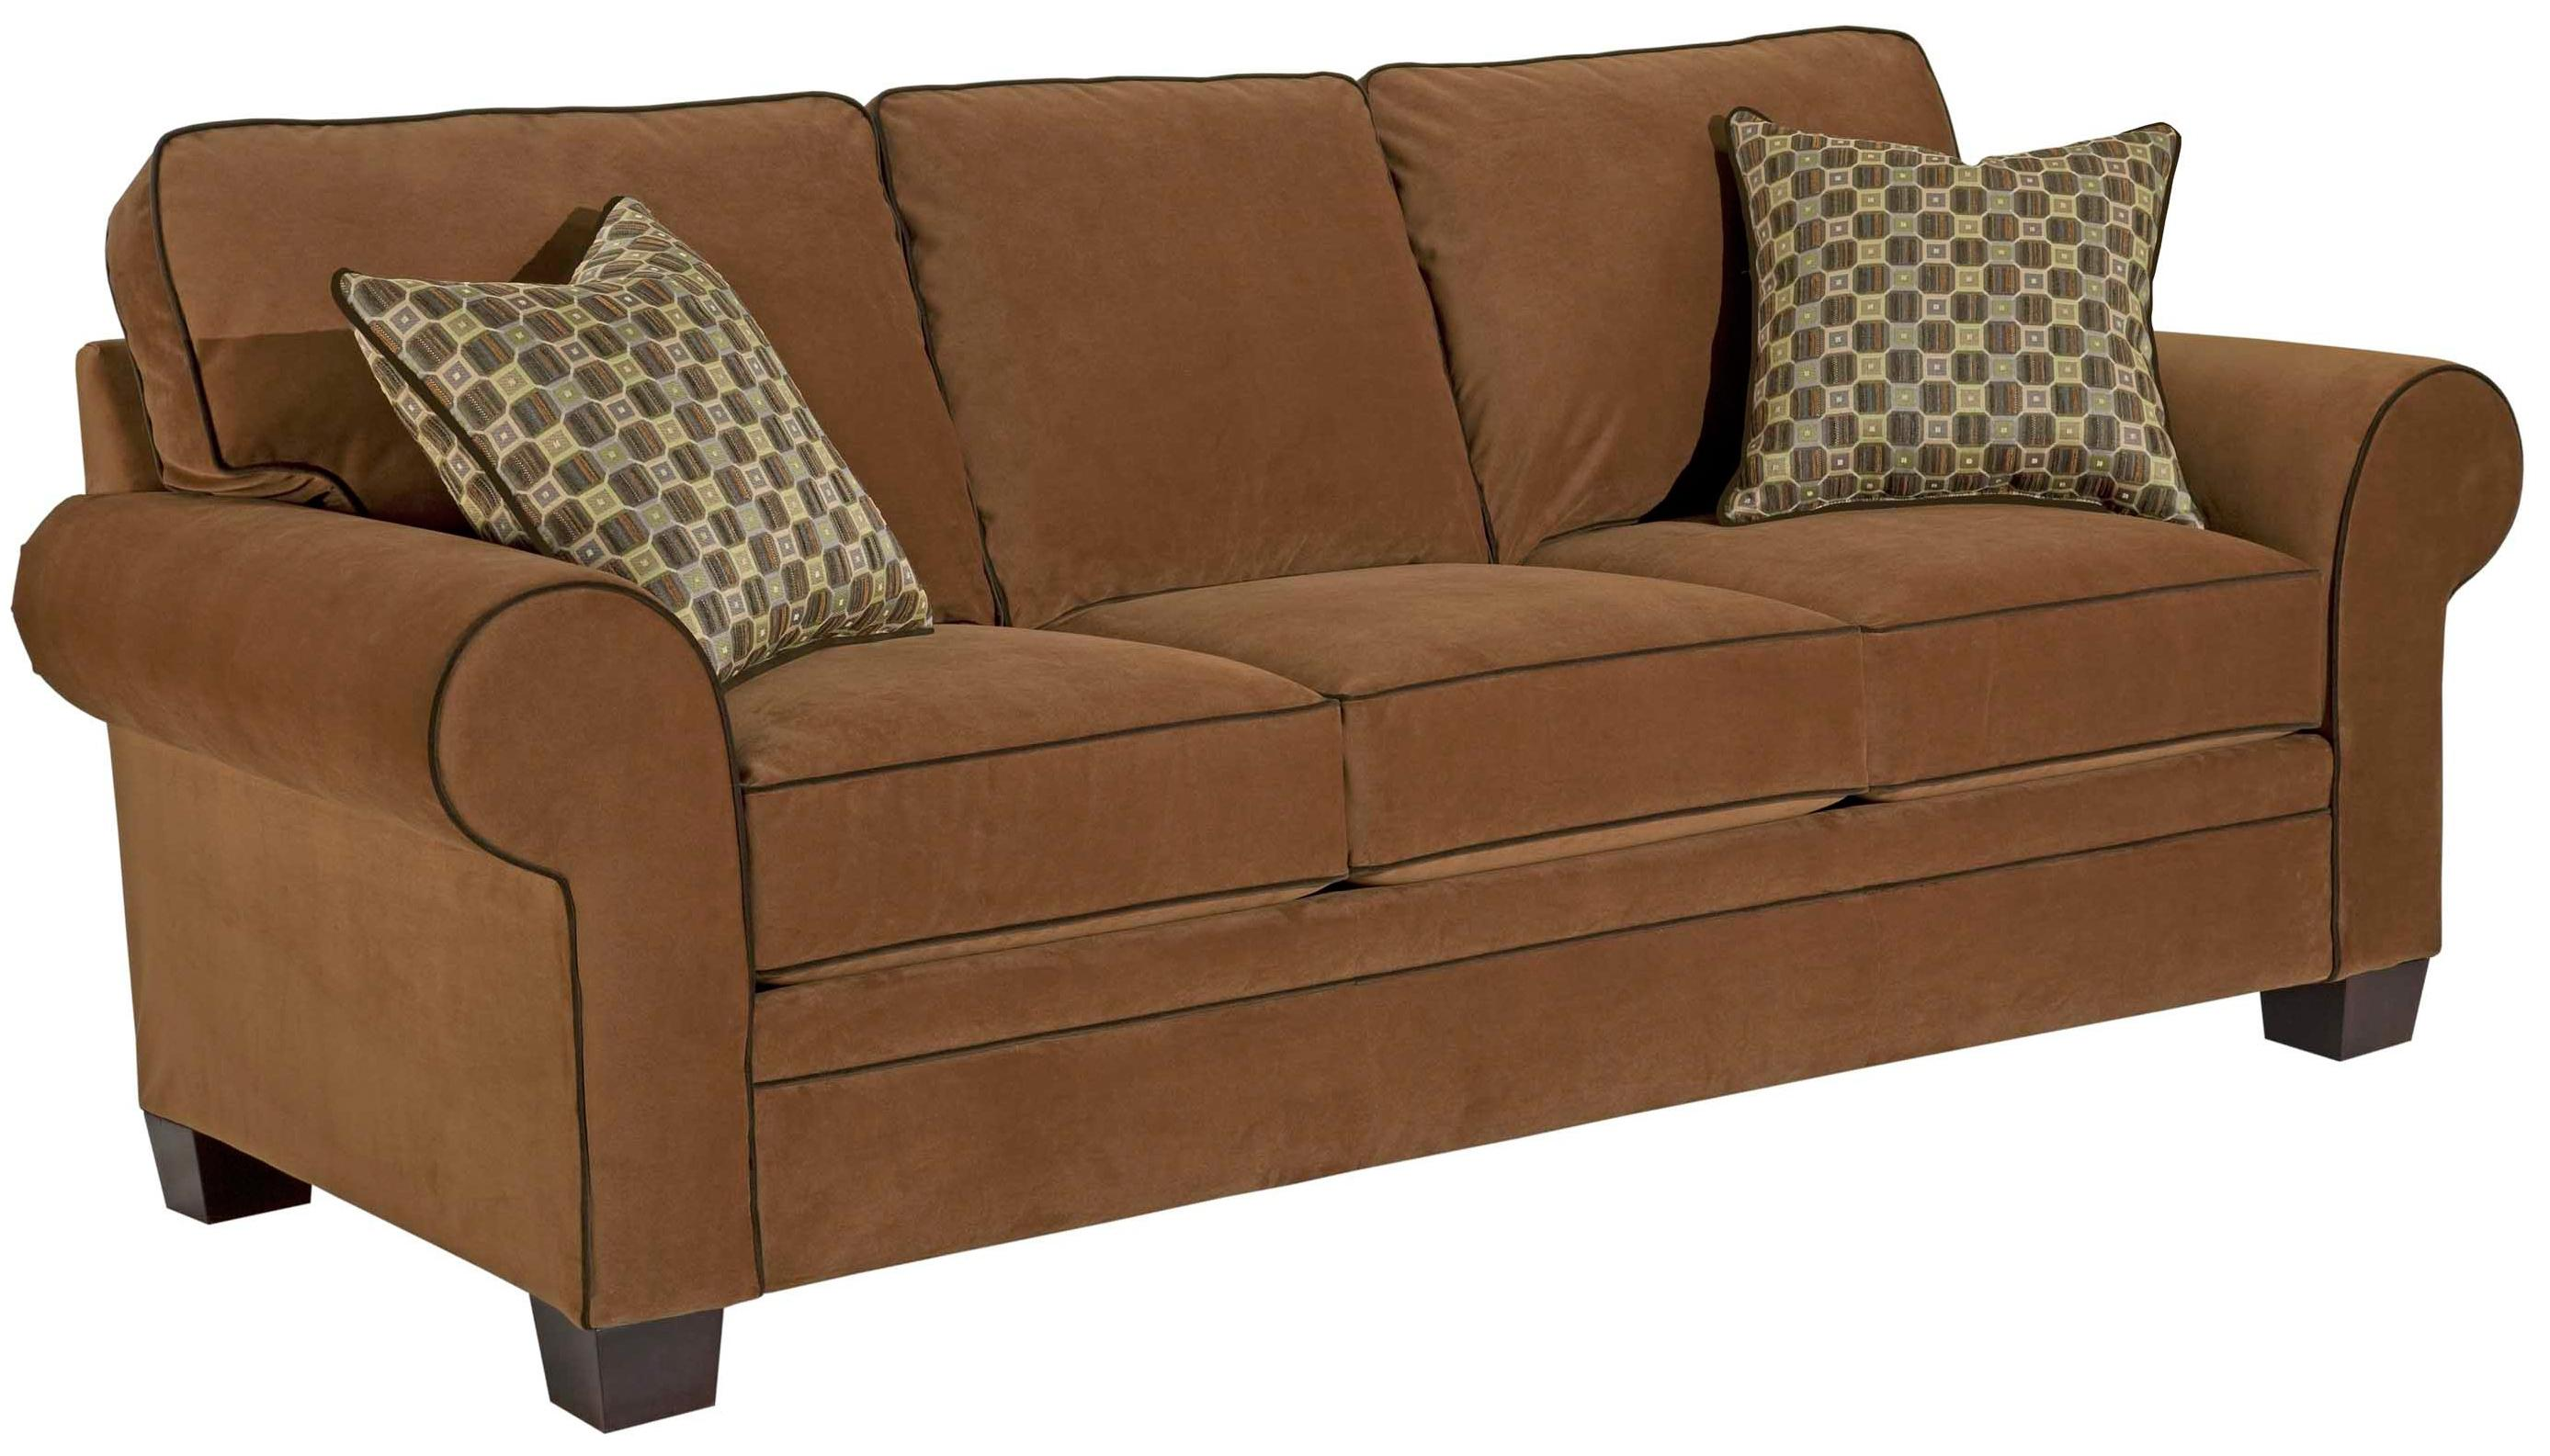 Broyhill Furniture Choices Upholstery <b>Customizable</b> 87 Inch Standard Sofa - Item Number: B112-3